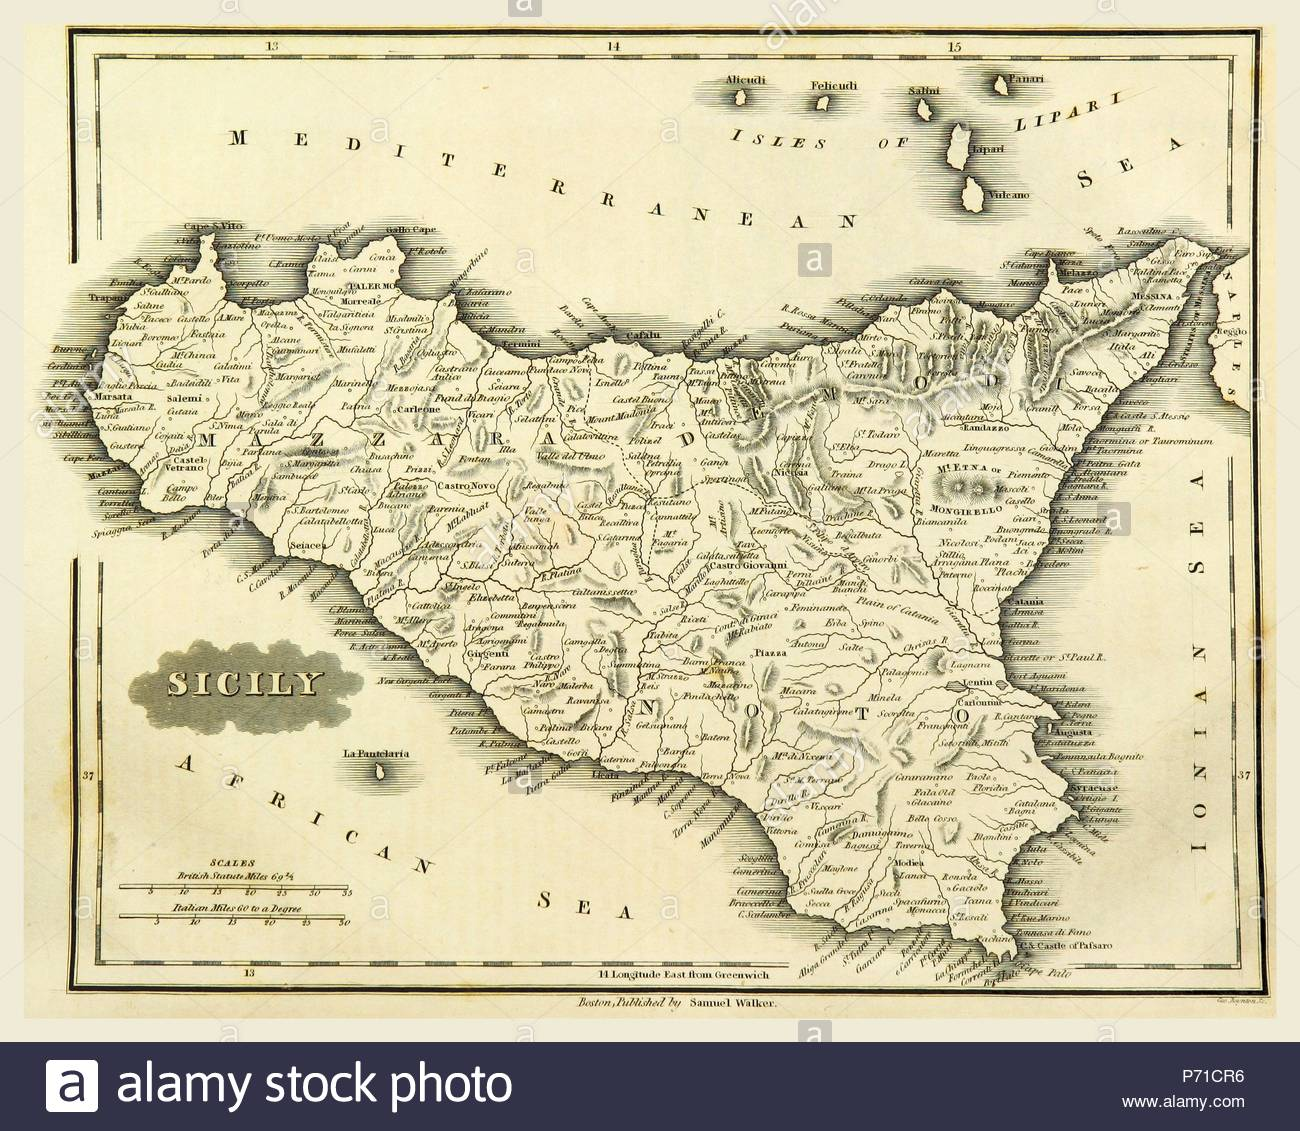 Map Sicily, Italy, 19th century engraving. - Stock Image